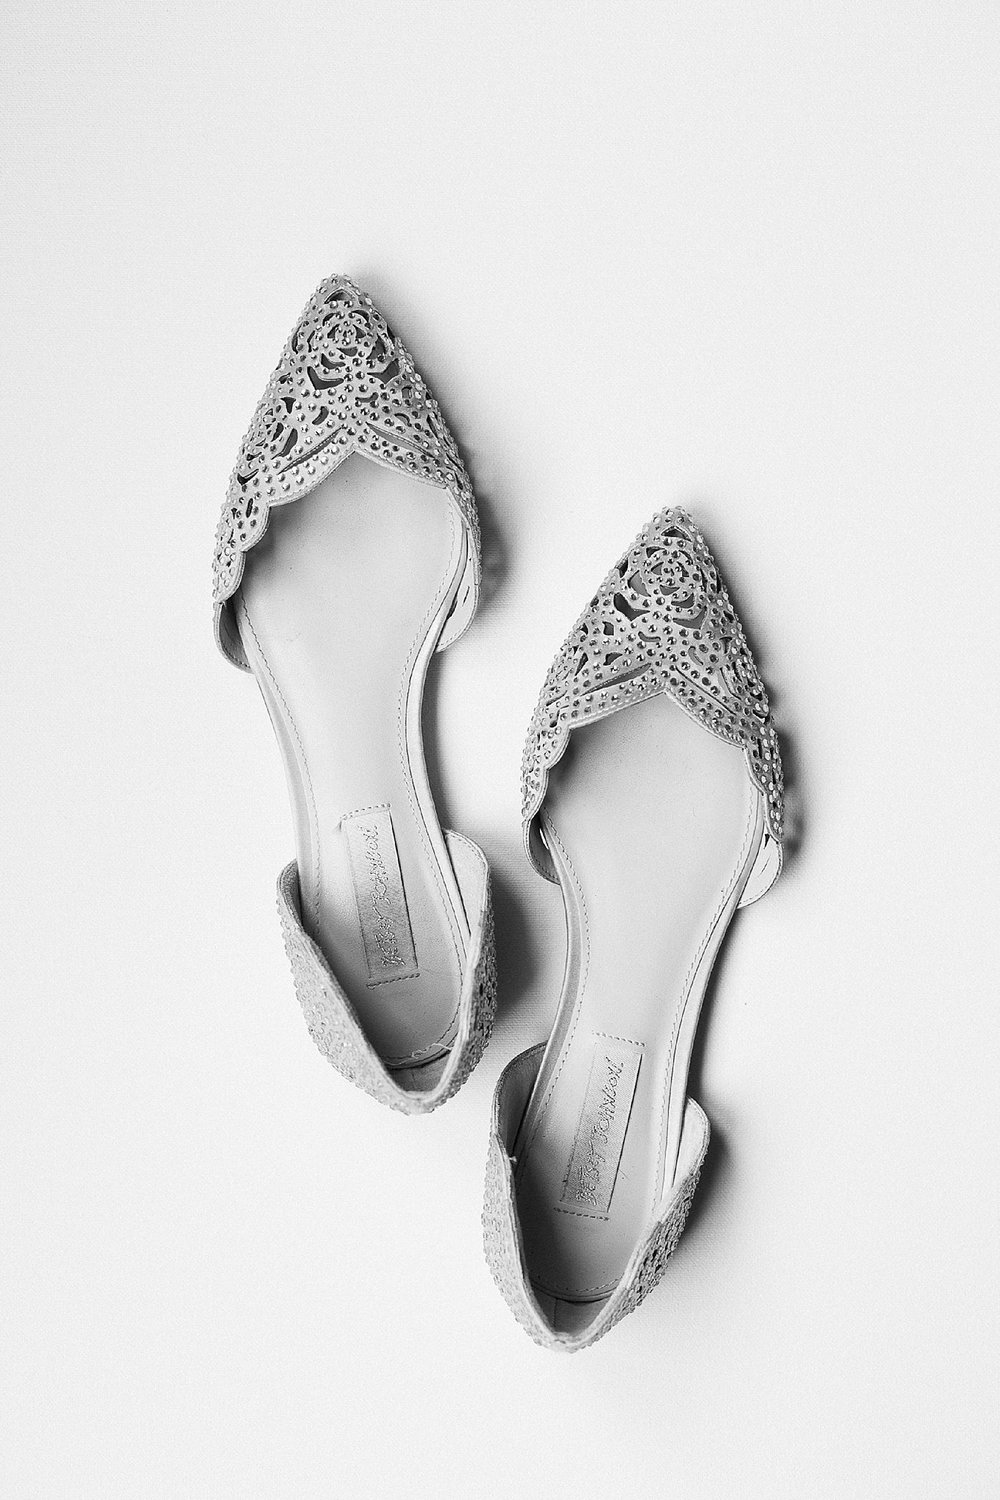 RCMP Wedding - Winnipeg Wedding Photographer - Bridal shoe details - Keila Marie Photography